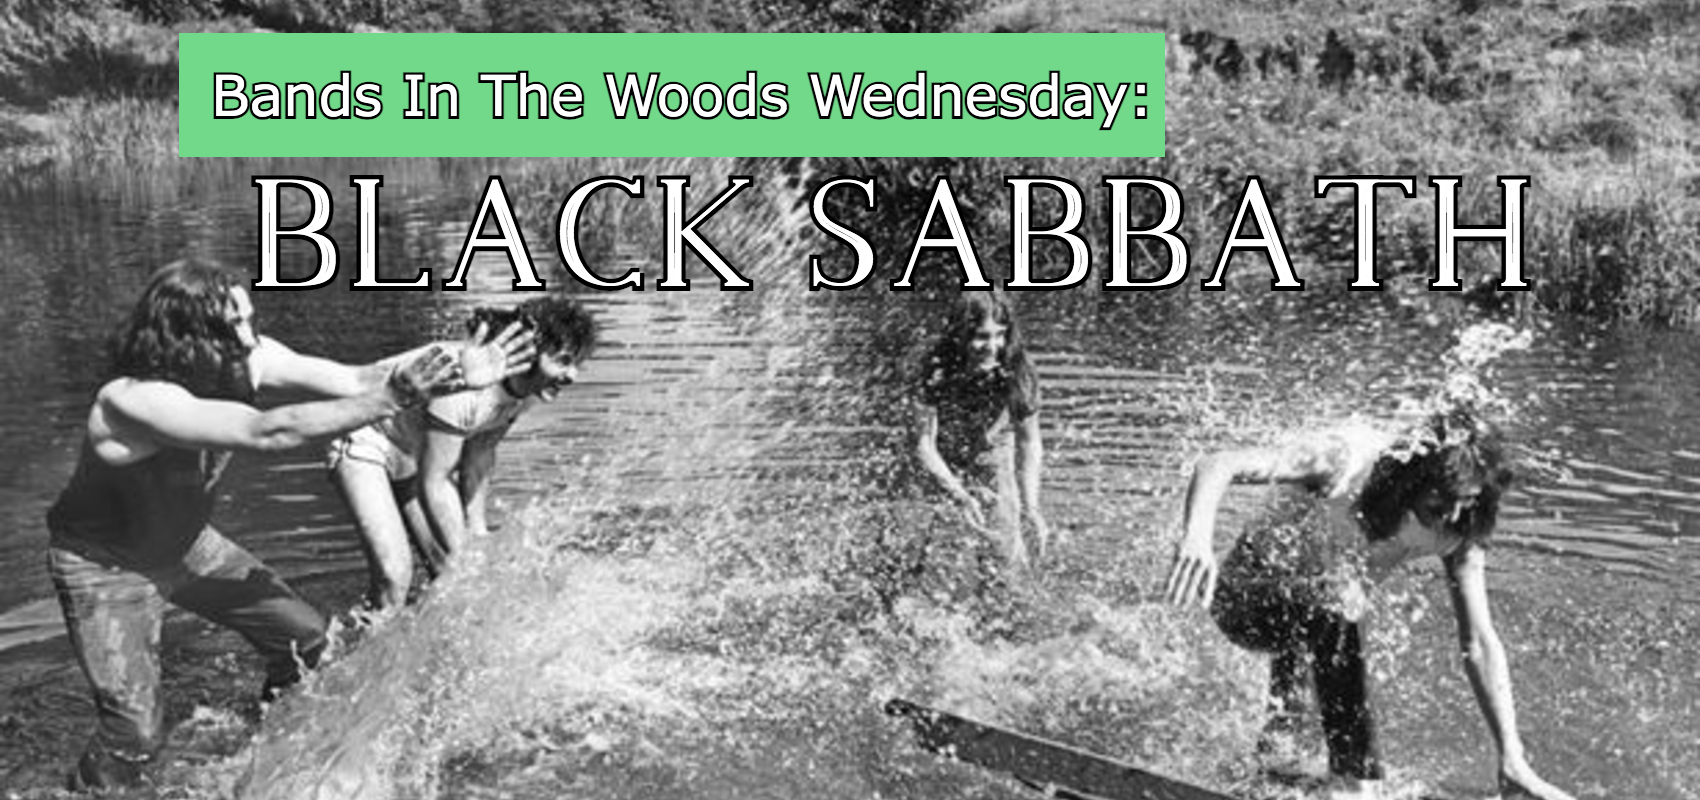 The members of Black Sabbath play in a shallow pond, splashing each other